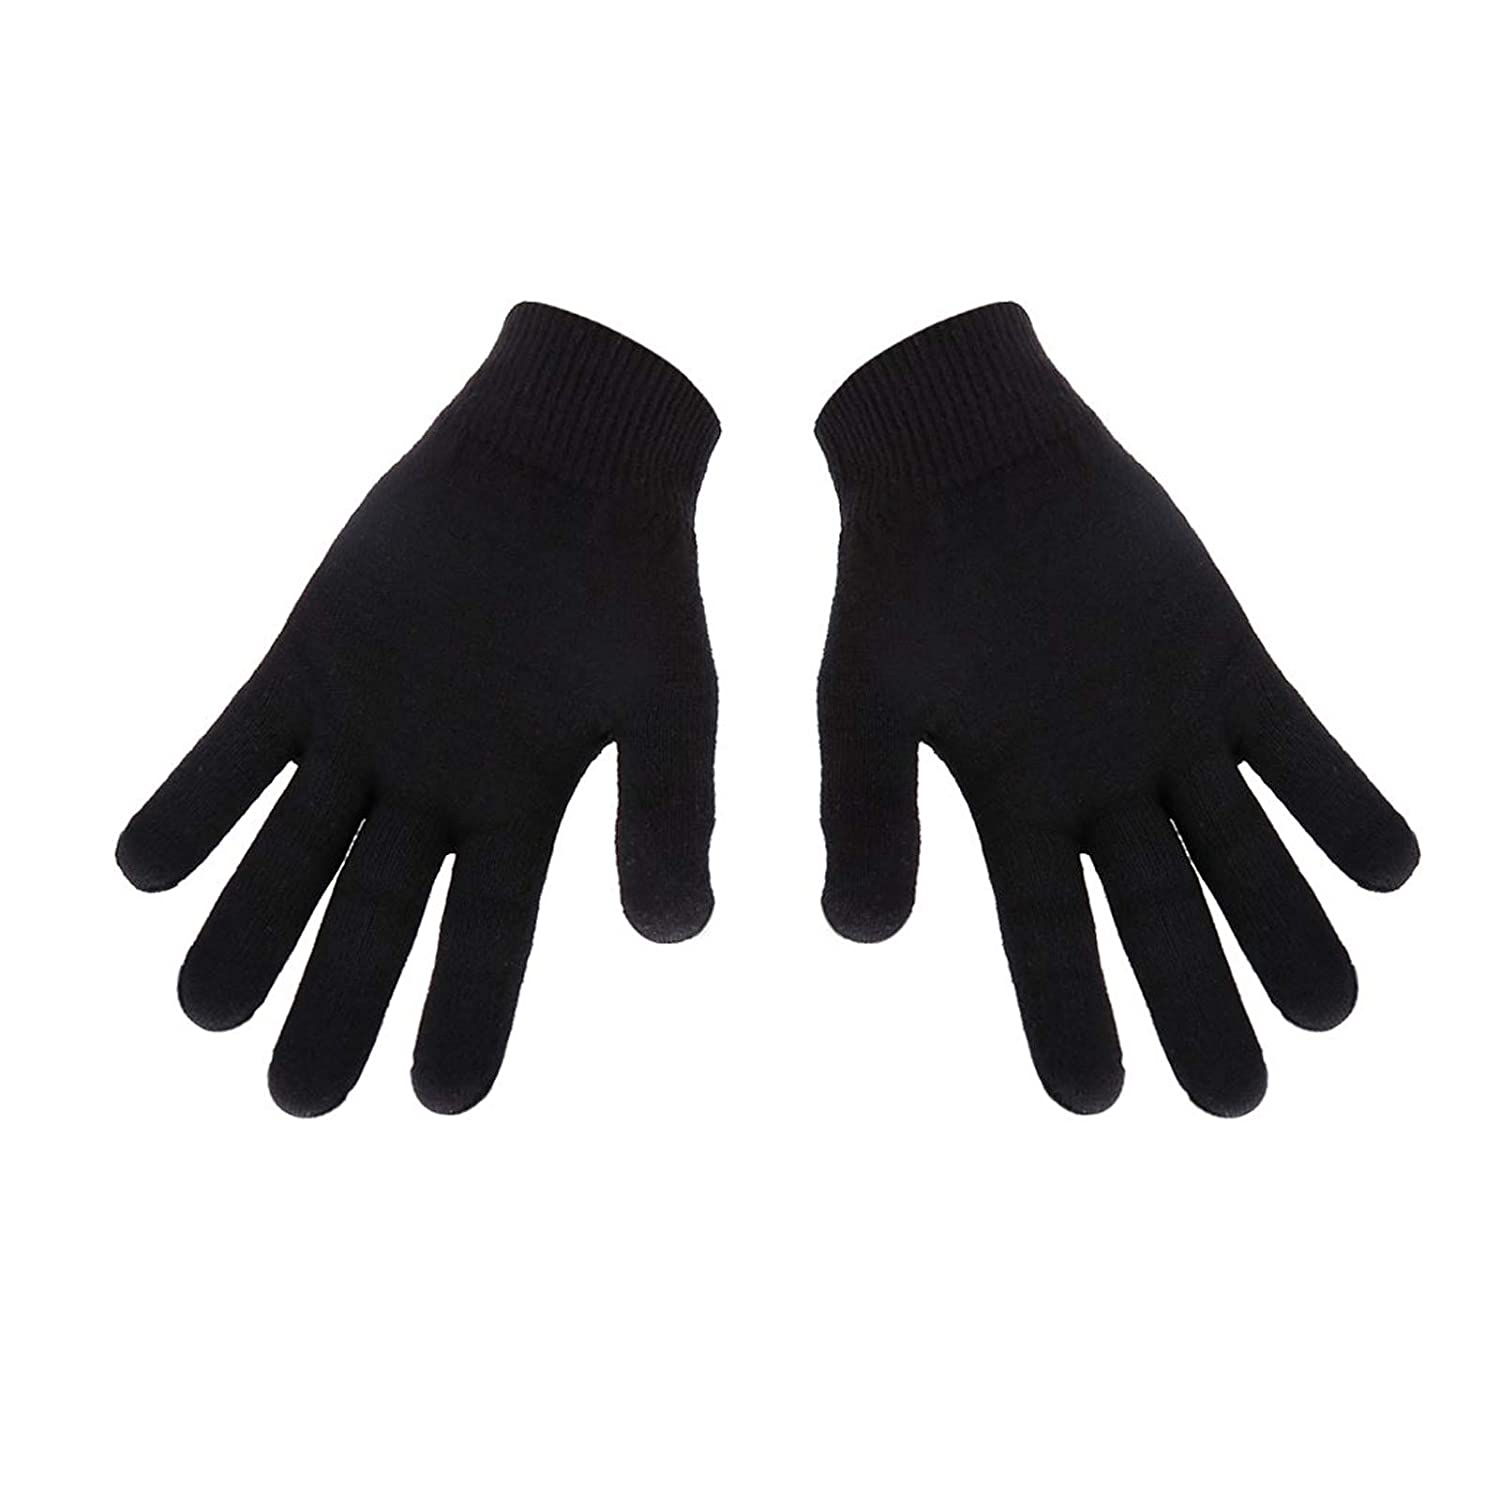 EXPER Men's Large Moisturizing Gloves with Gel Lining - Dry Hands Treatment Hydrating Cracked Hand Healing Gloves - Repair Rough, Chapped Skin Overnight (Black) : Beauty